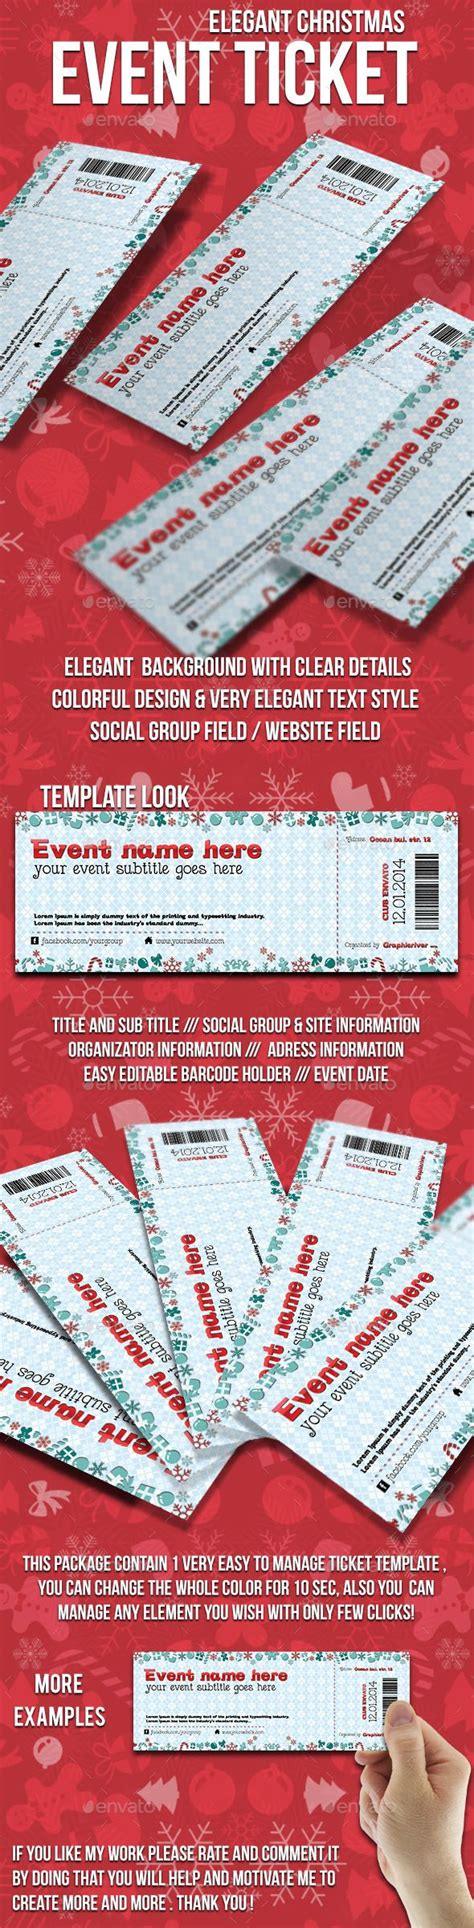 event ticket layout 25 best ideas about event ticket template on pinterest